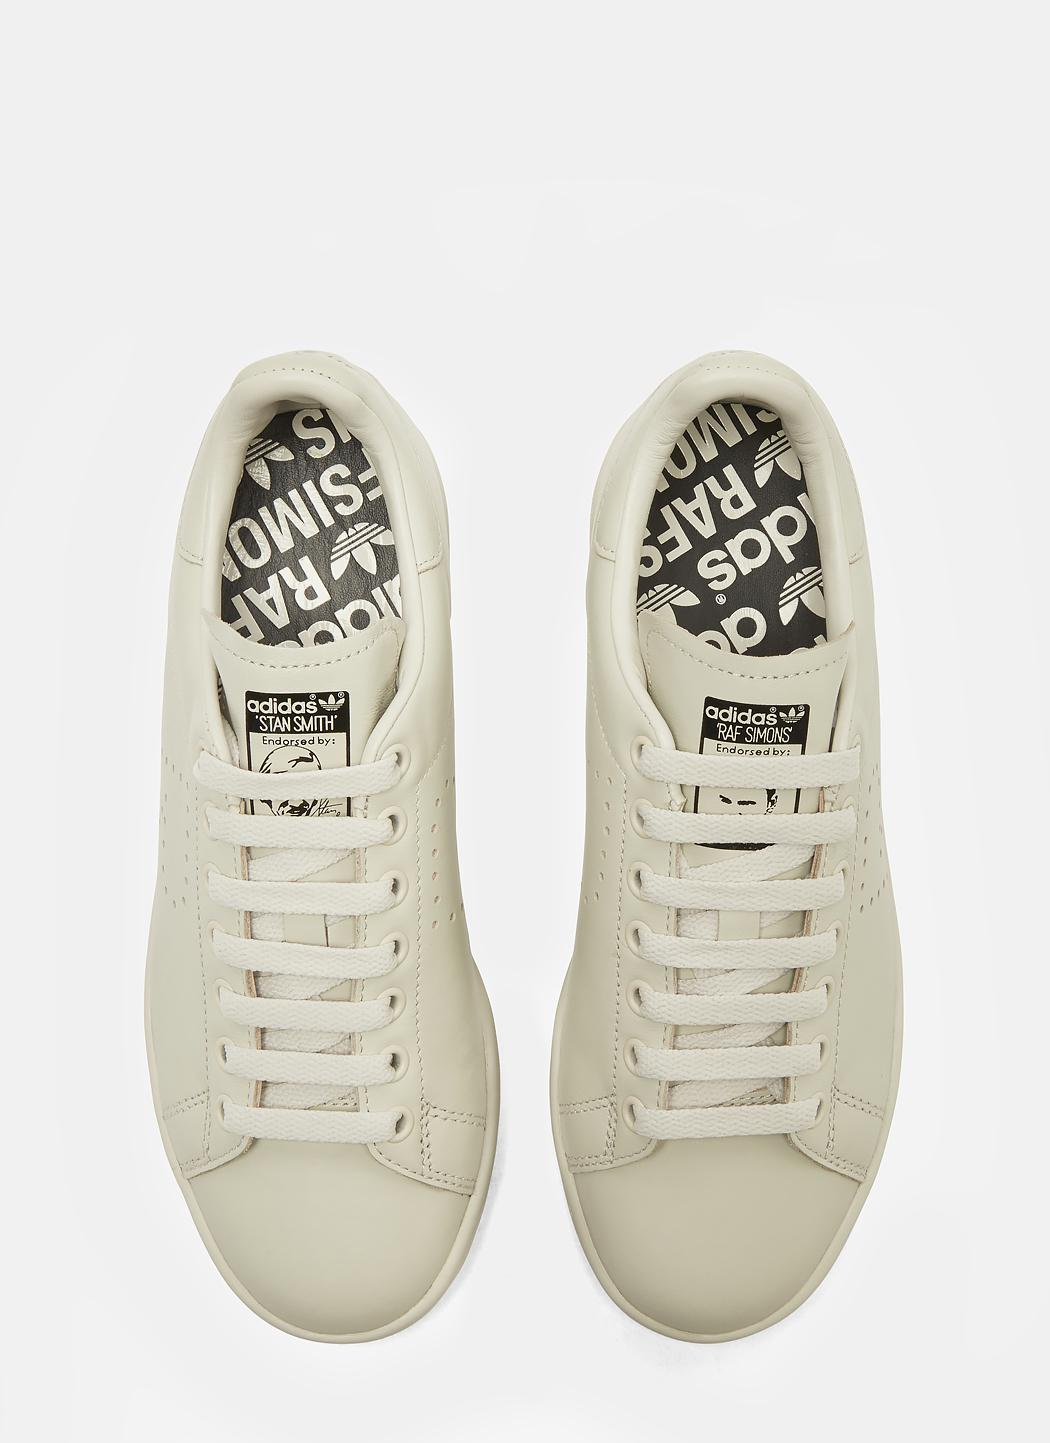 Adidas By Raf Simons X Adidas Stan Smith Sneakers In Grey in Gray ... 9063d124b